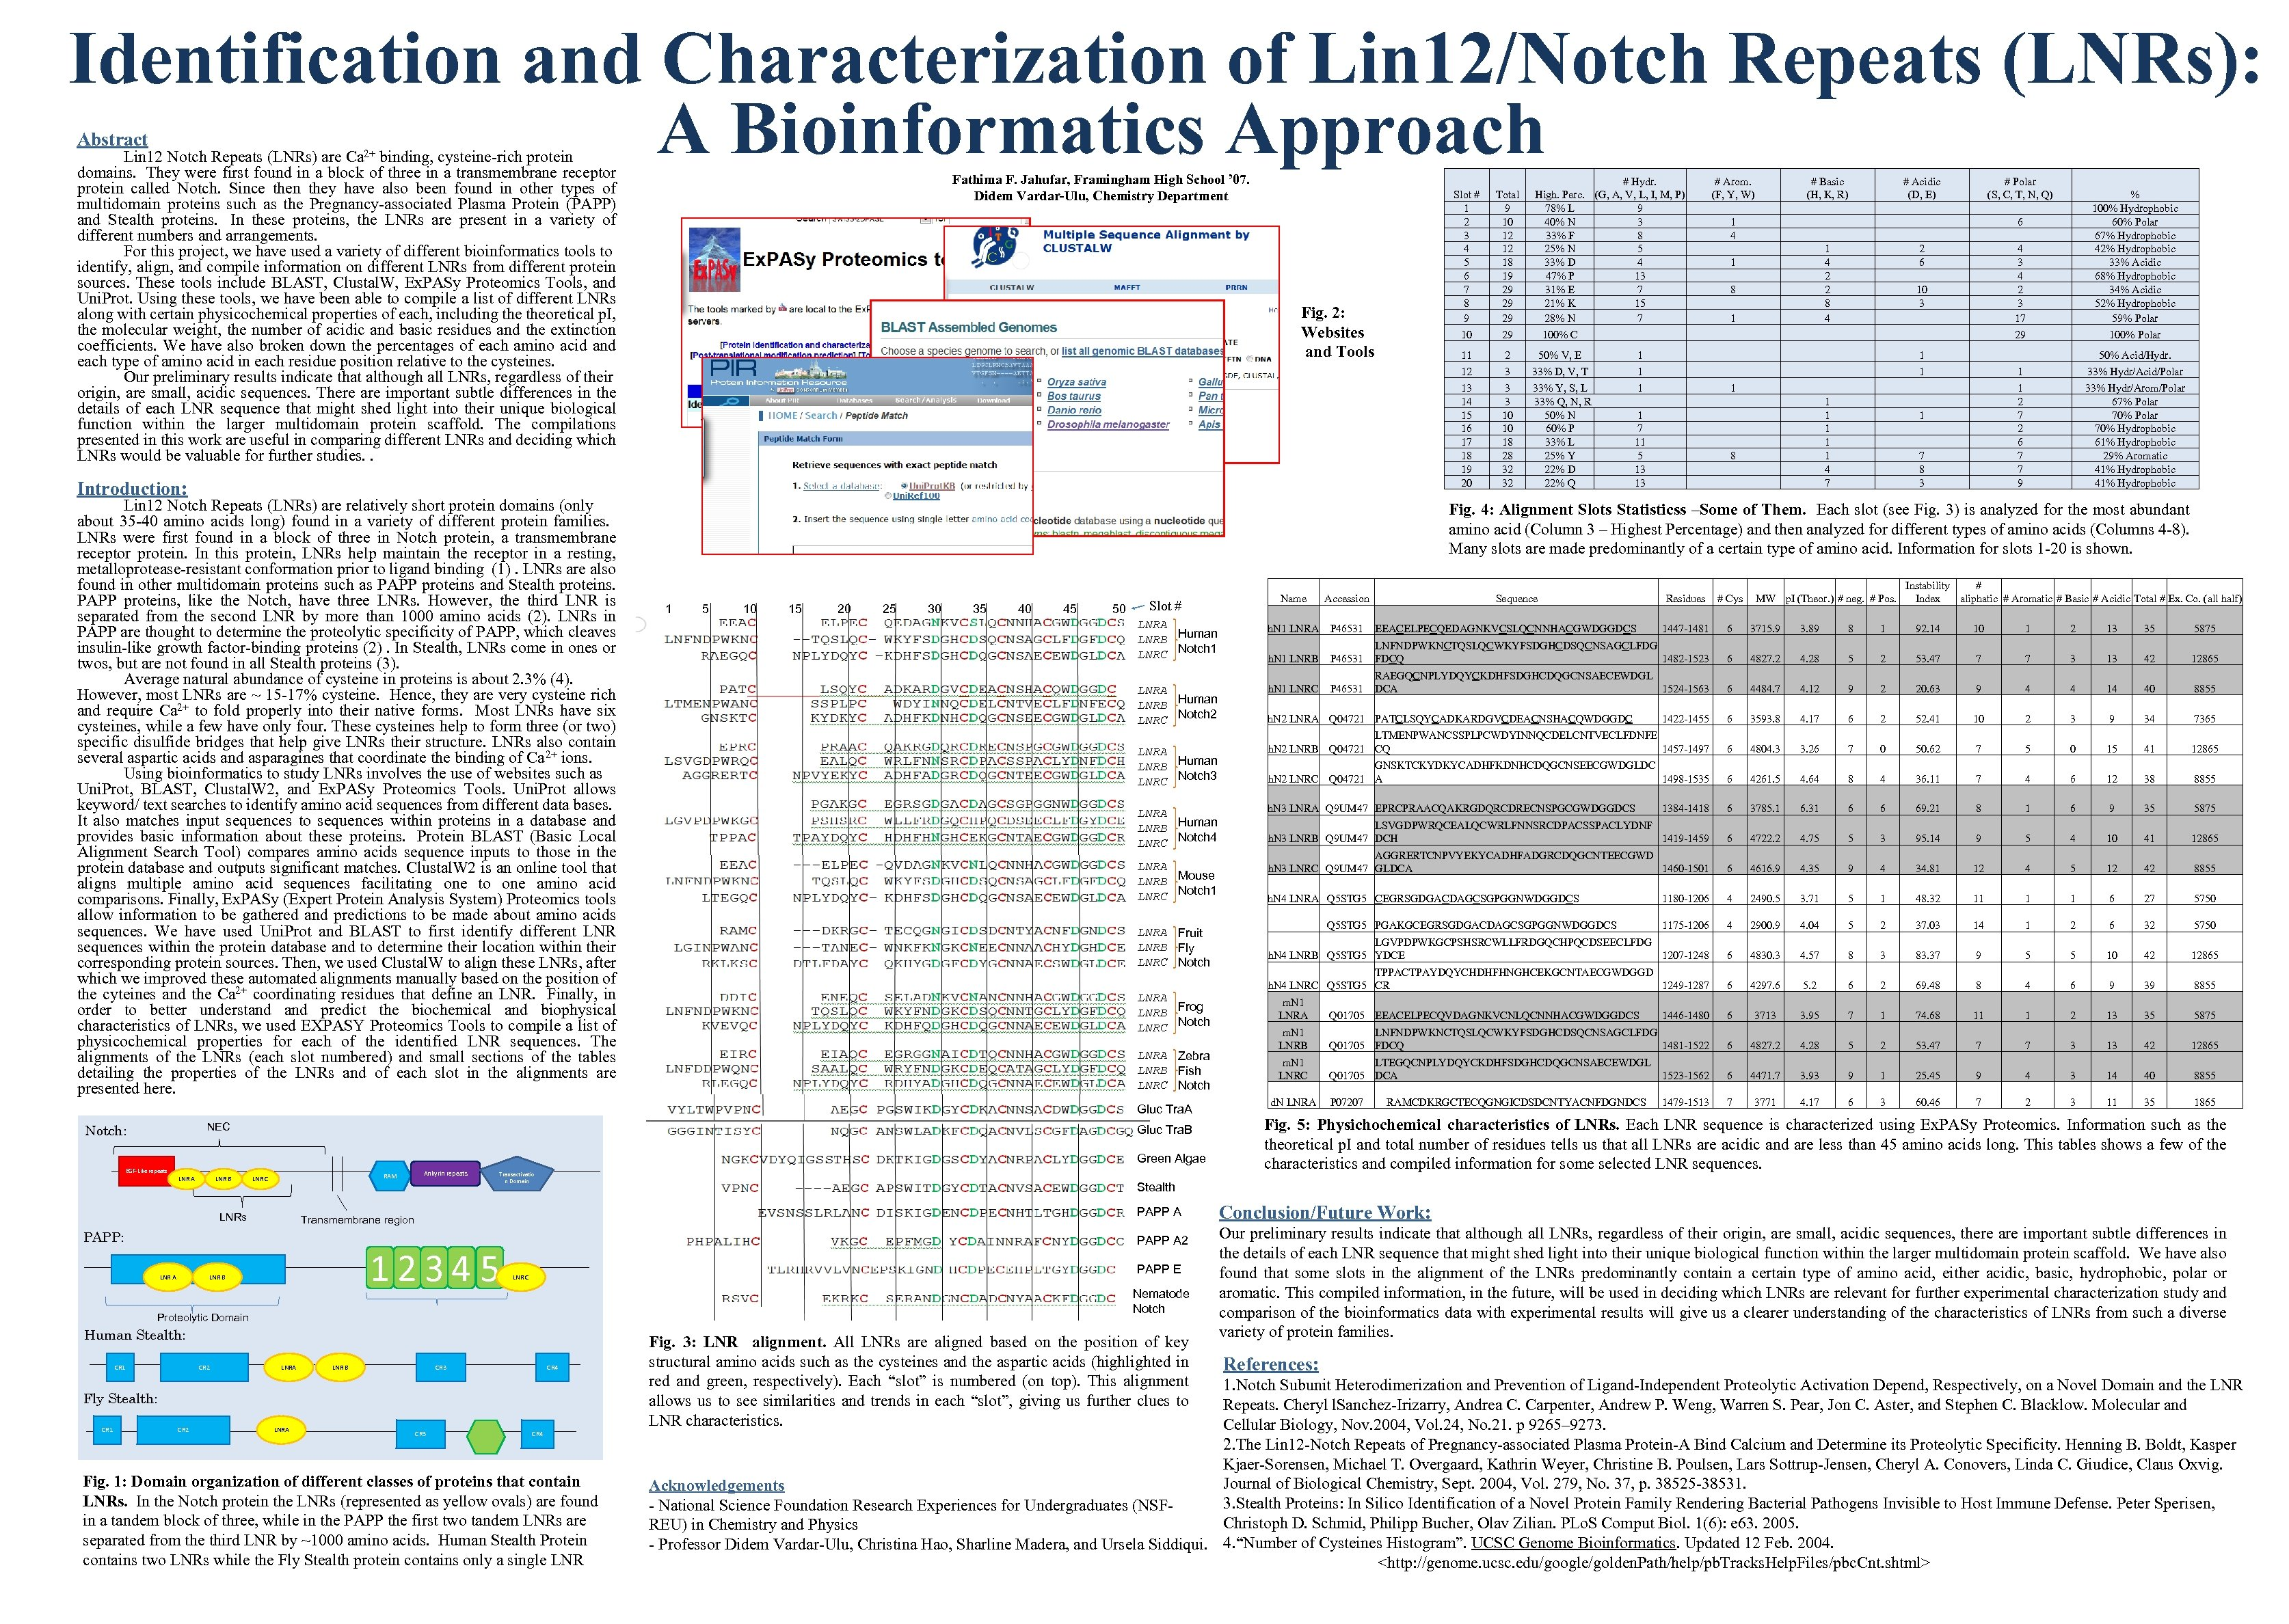 Identification and Characterization of Lin 12/Notch Repeats (LNRs): A Bioinformatics Approach Abstract Lin 12